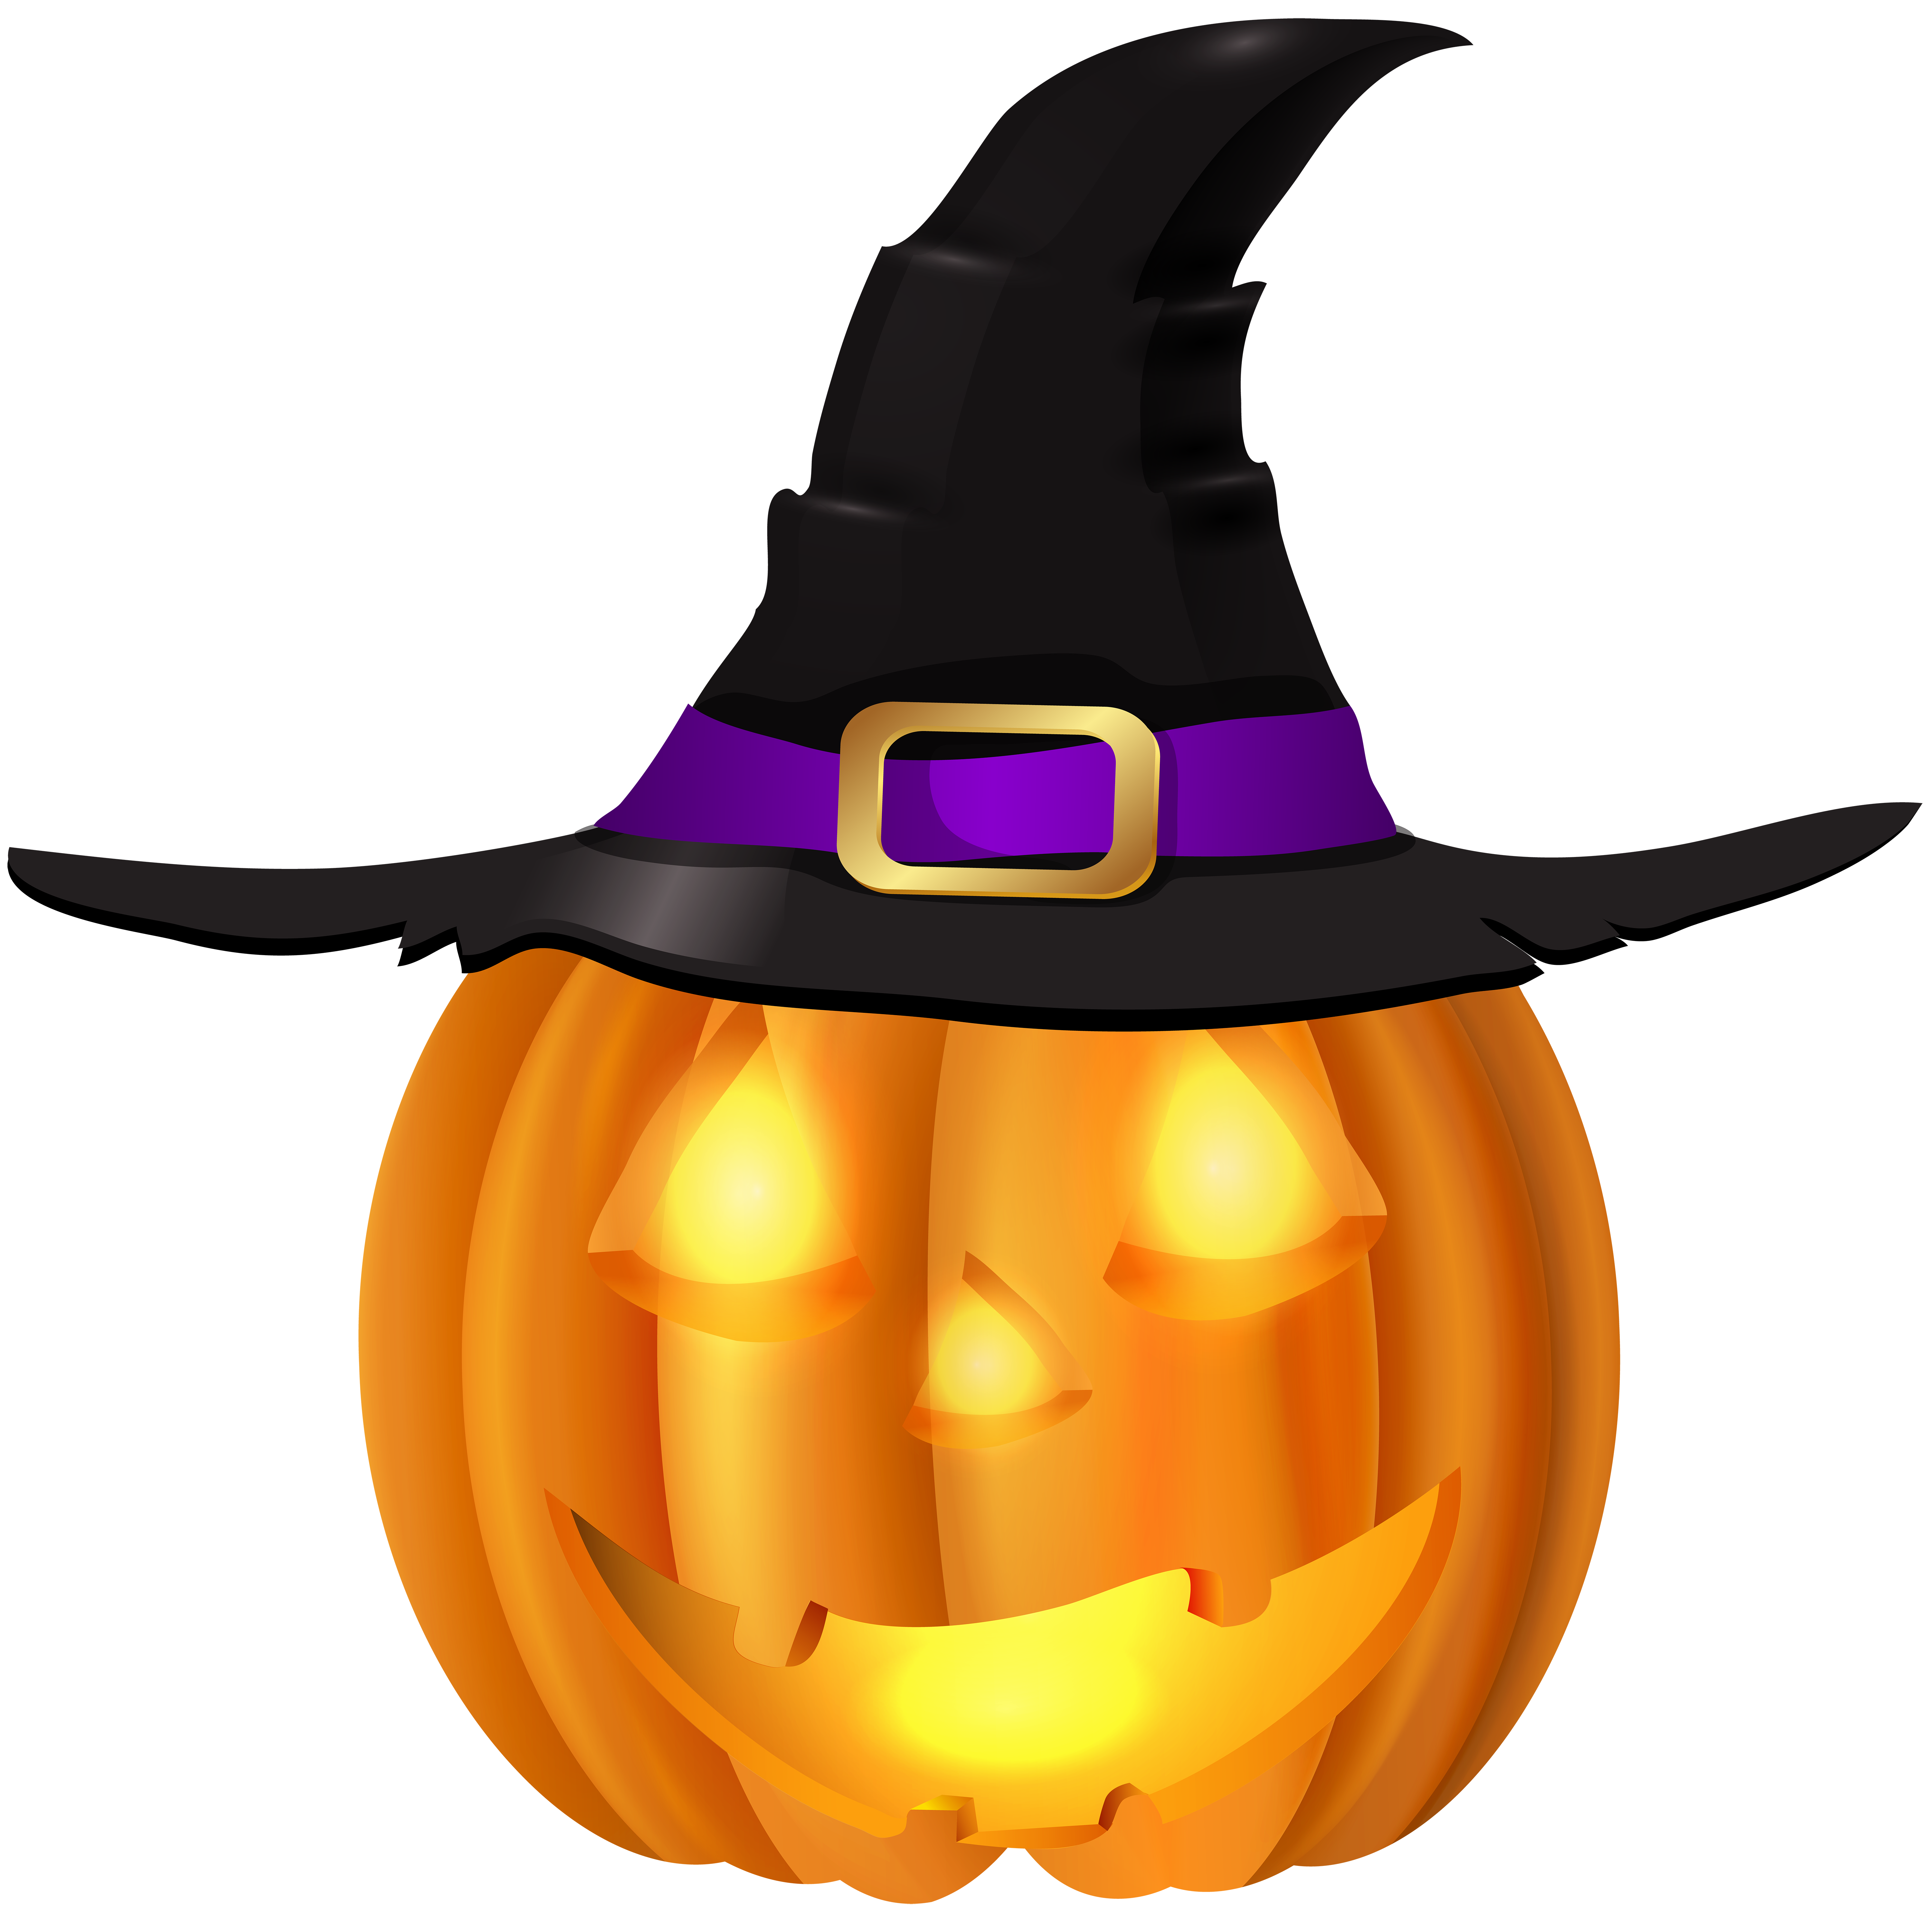 6000x5933 Halloween Pumpkin With Witch Hat Png Clip Artu200b Gallery